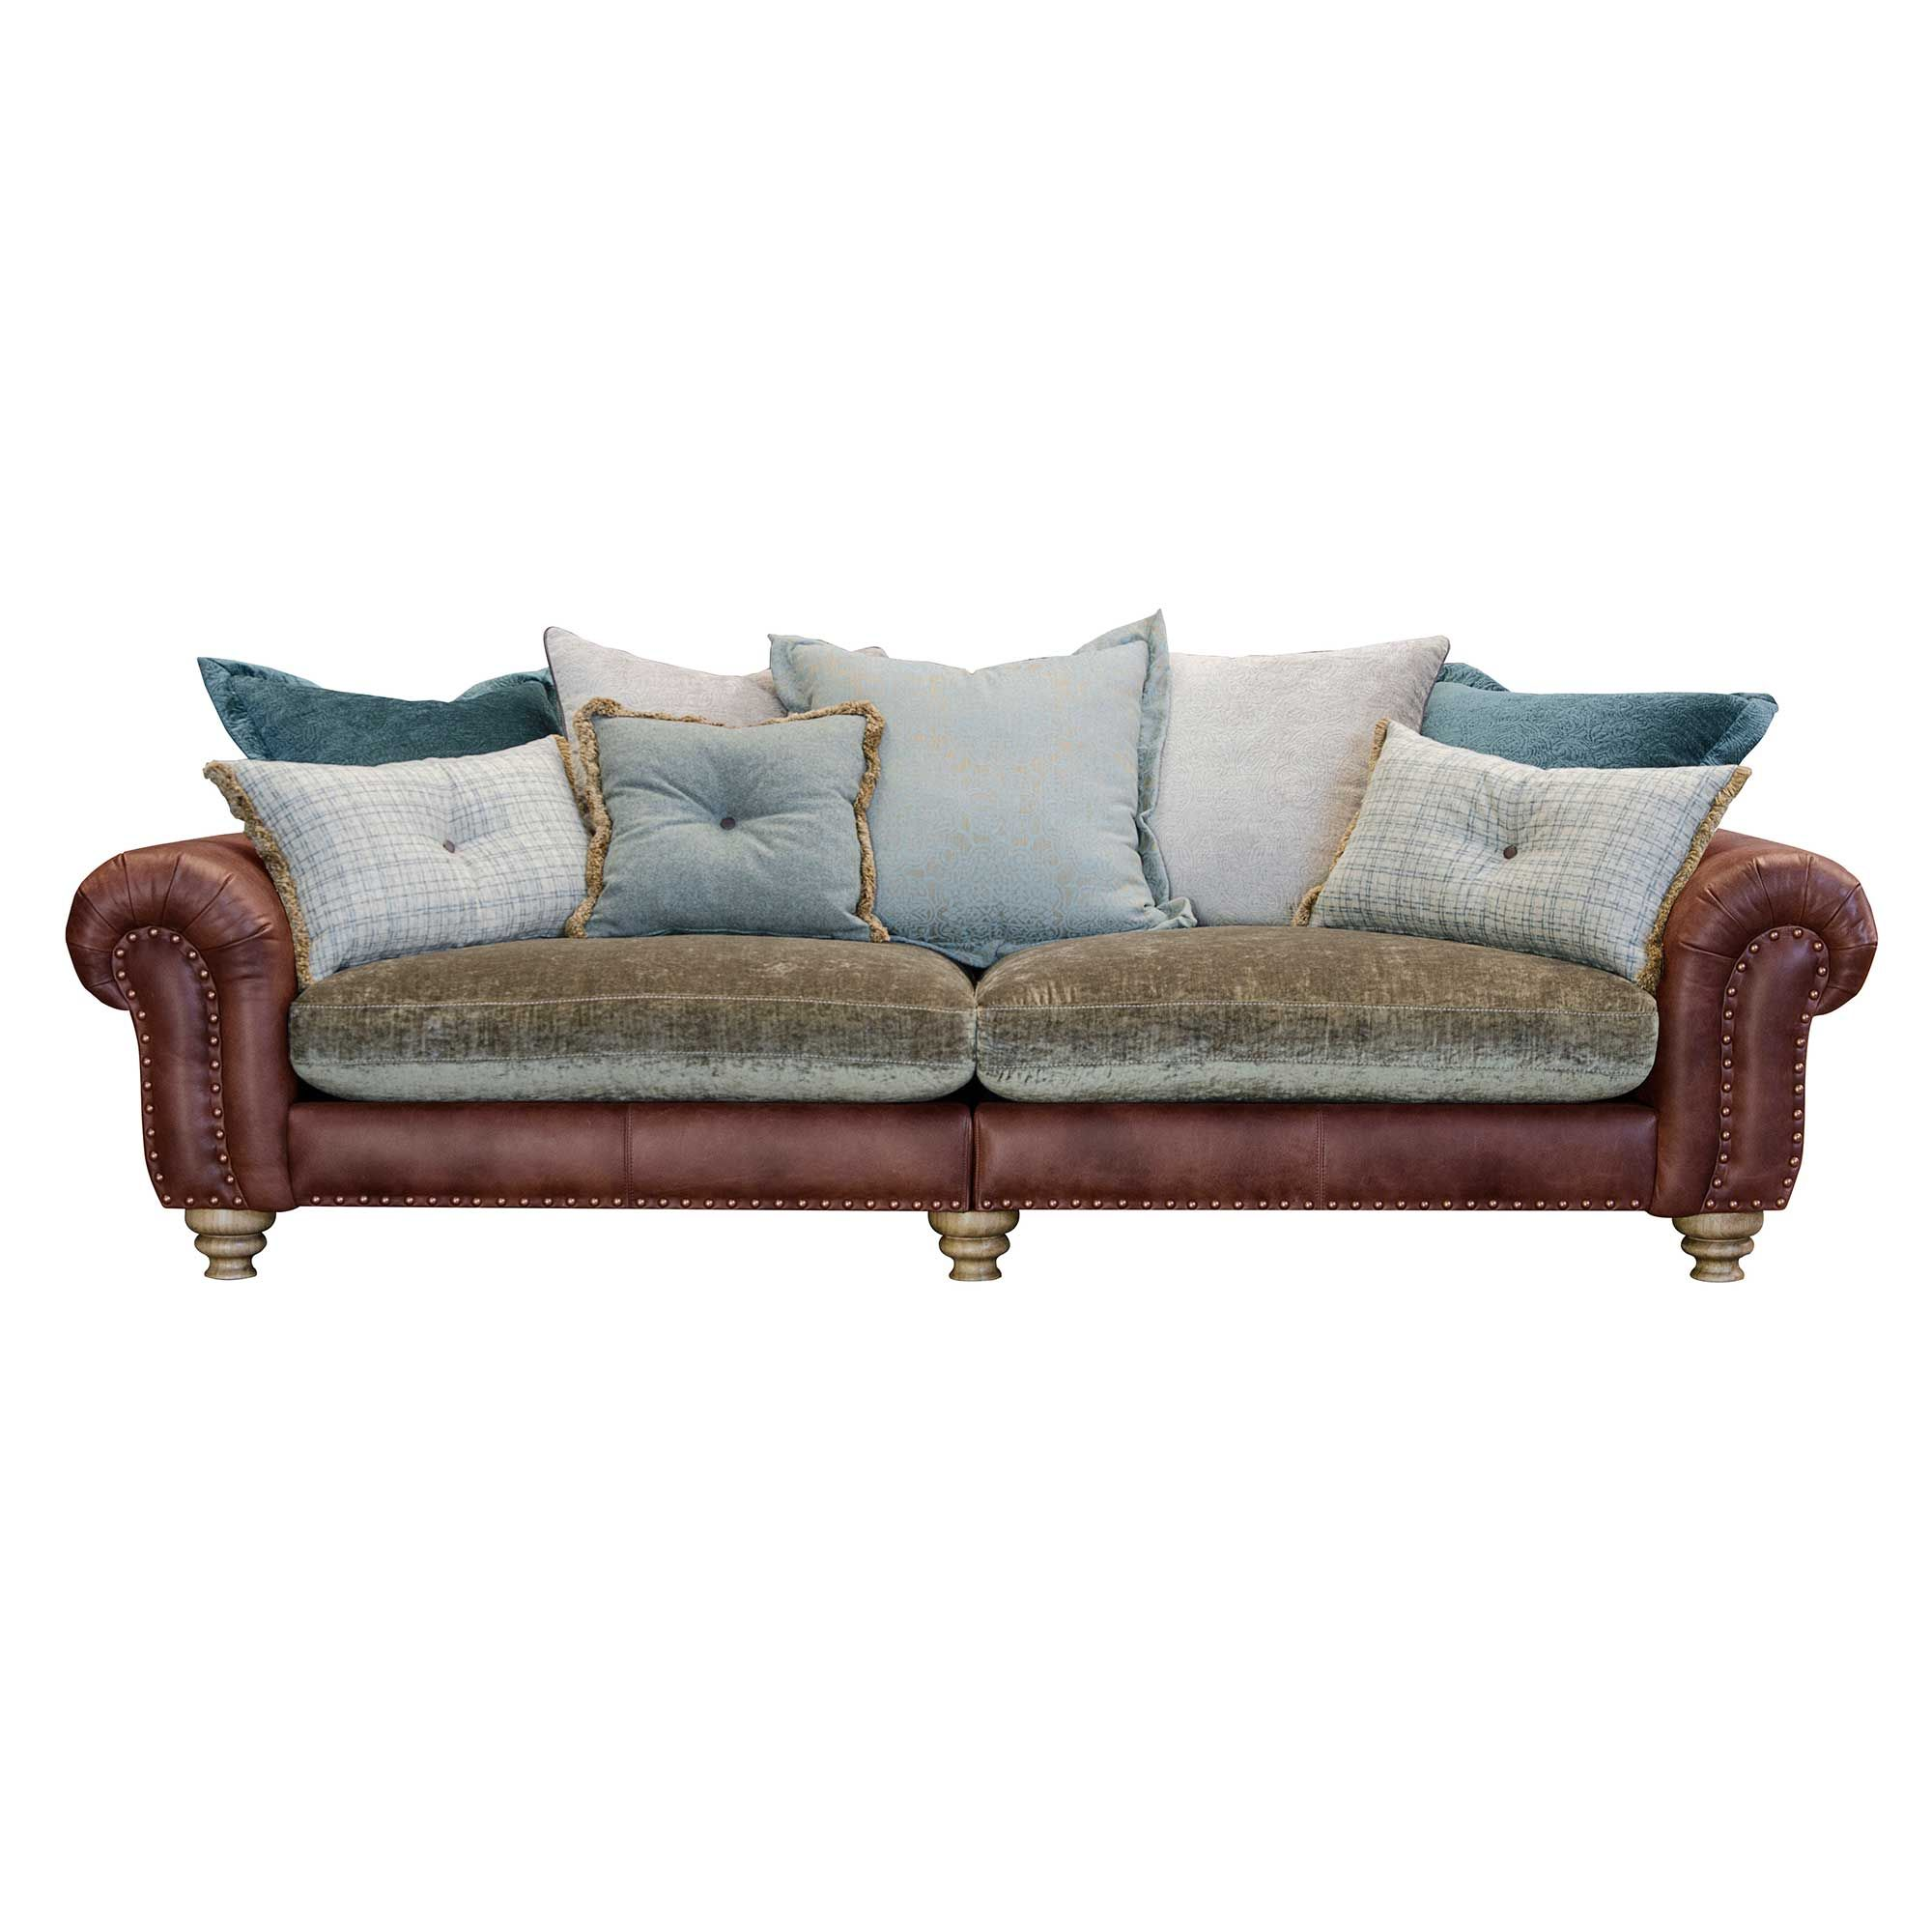 Sofology Sofas Dorchester Dorchester Grand Split Pillow Back Sofa Leather And Fabric Mix